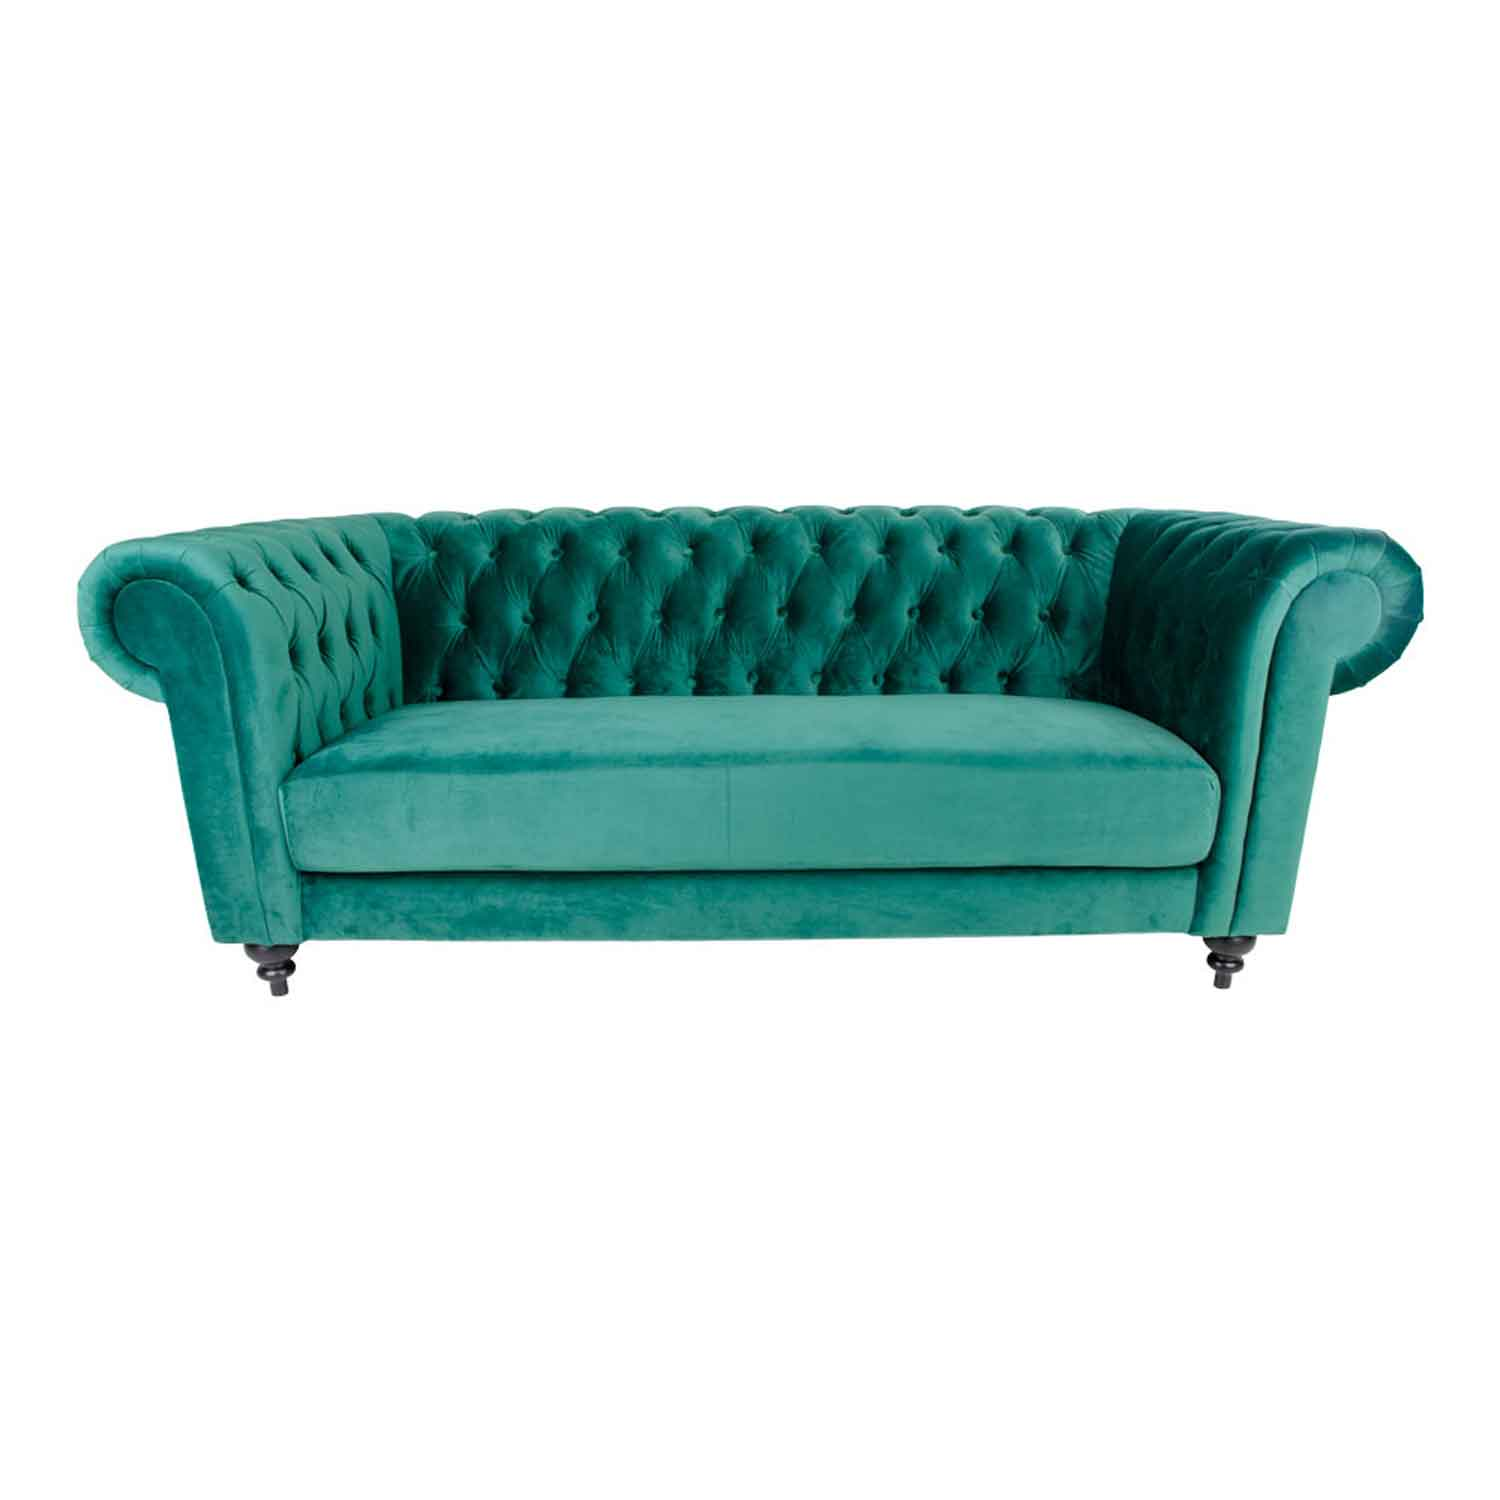 HOUSE NORDIC Chester 3-personers sofa - grn velour/tr